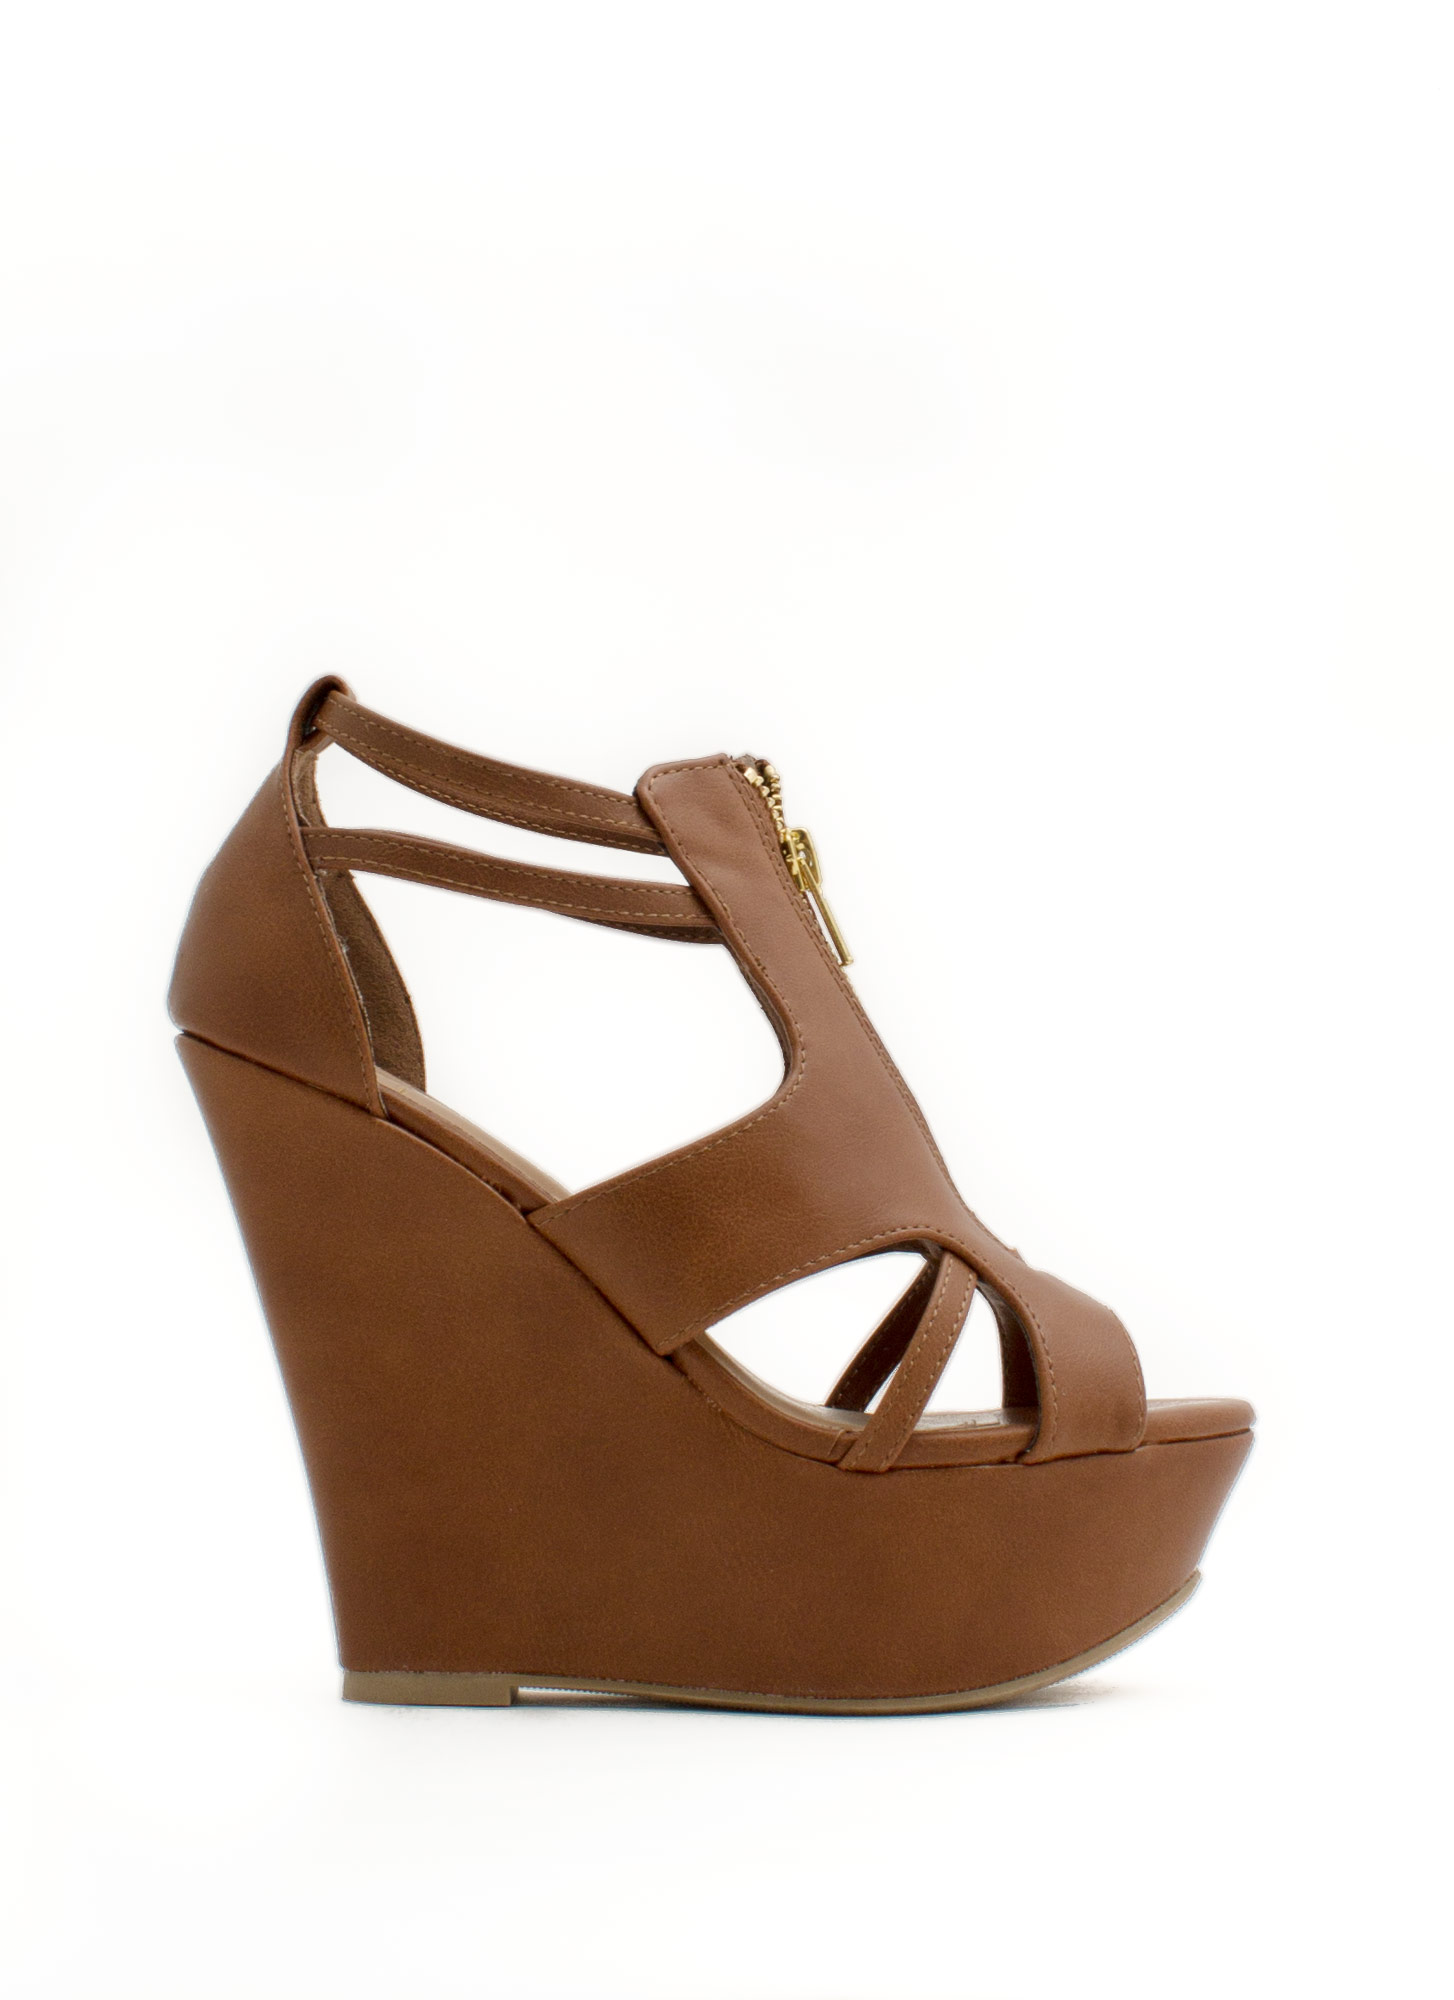 Zip It Good Strappy Cut-Out Wedges LTTAN